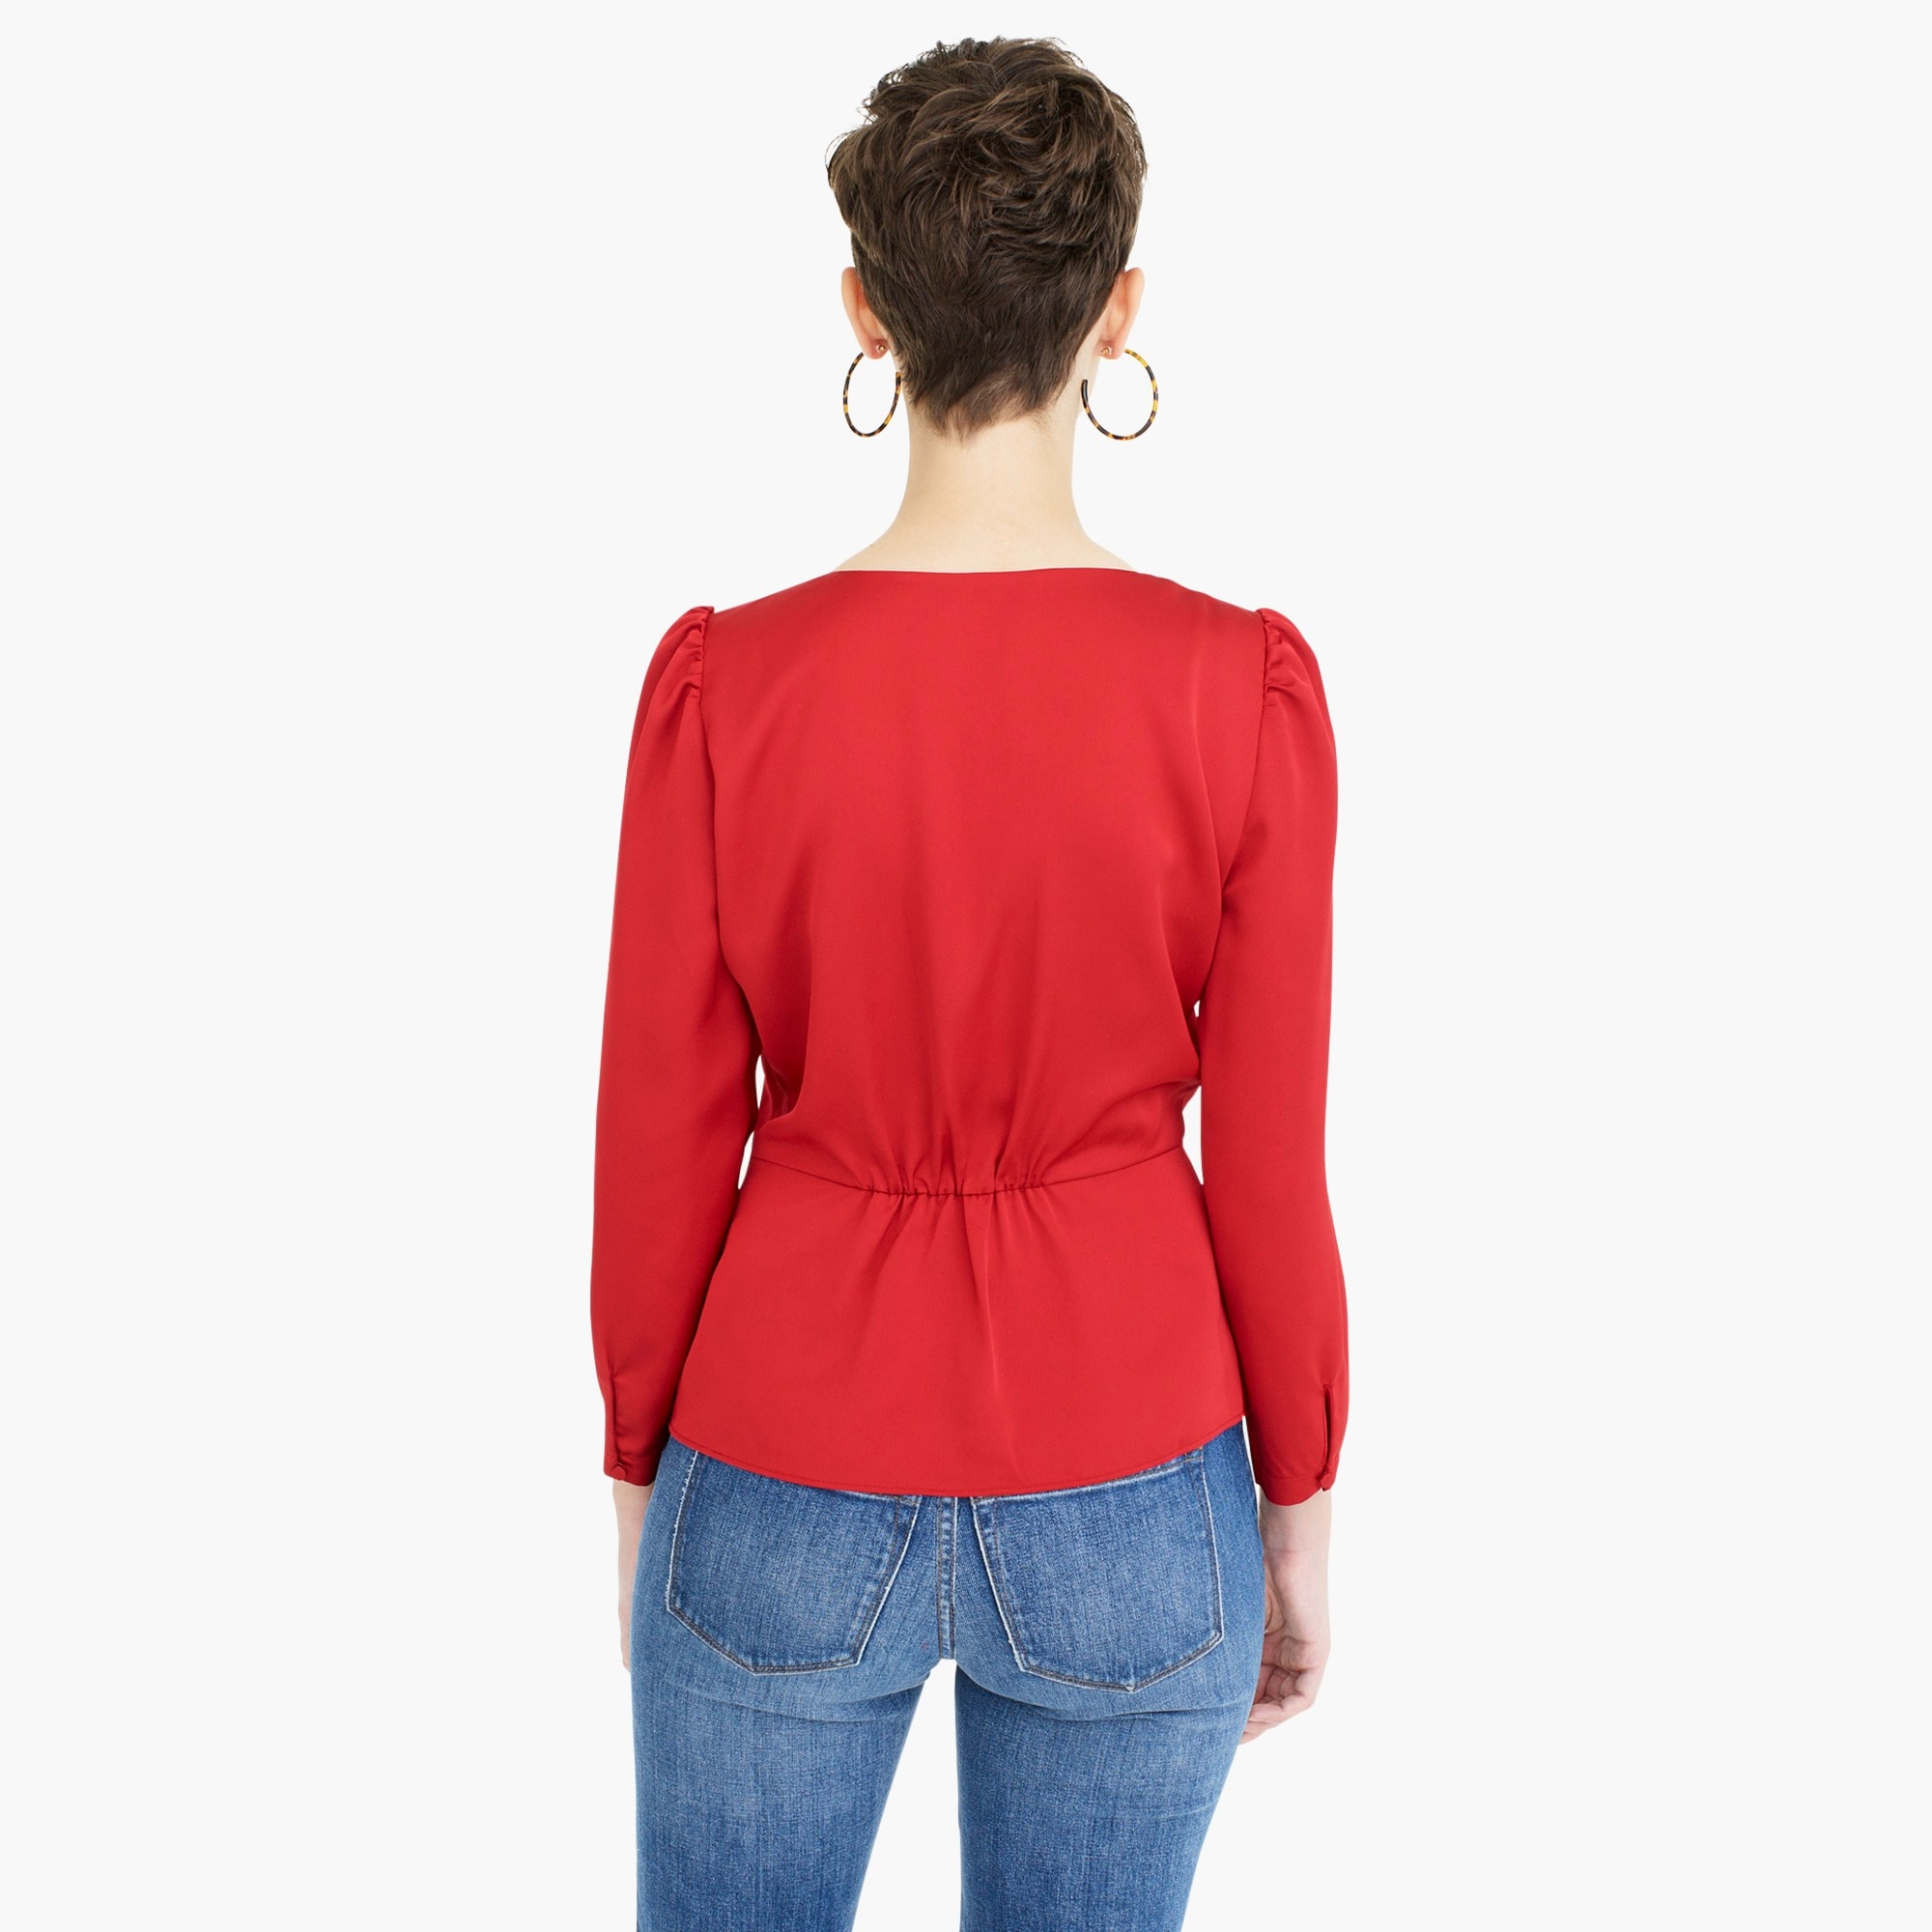 Image 5 for Long-sleeve peplum top in satin-crepe